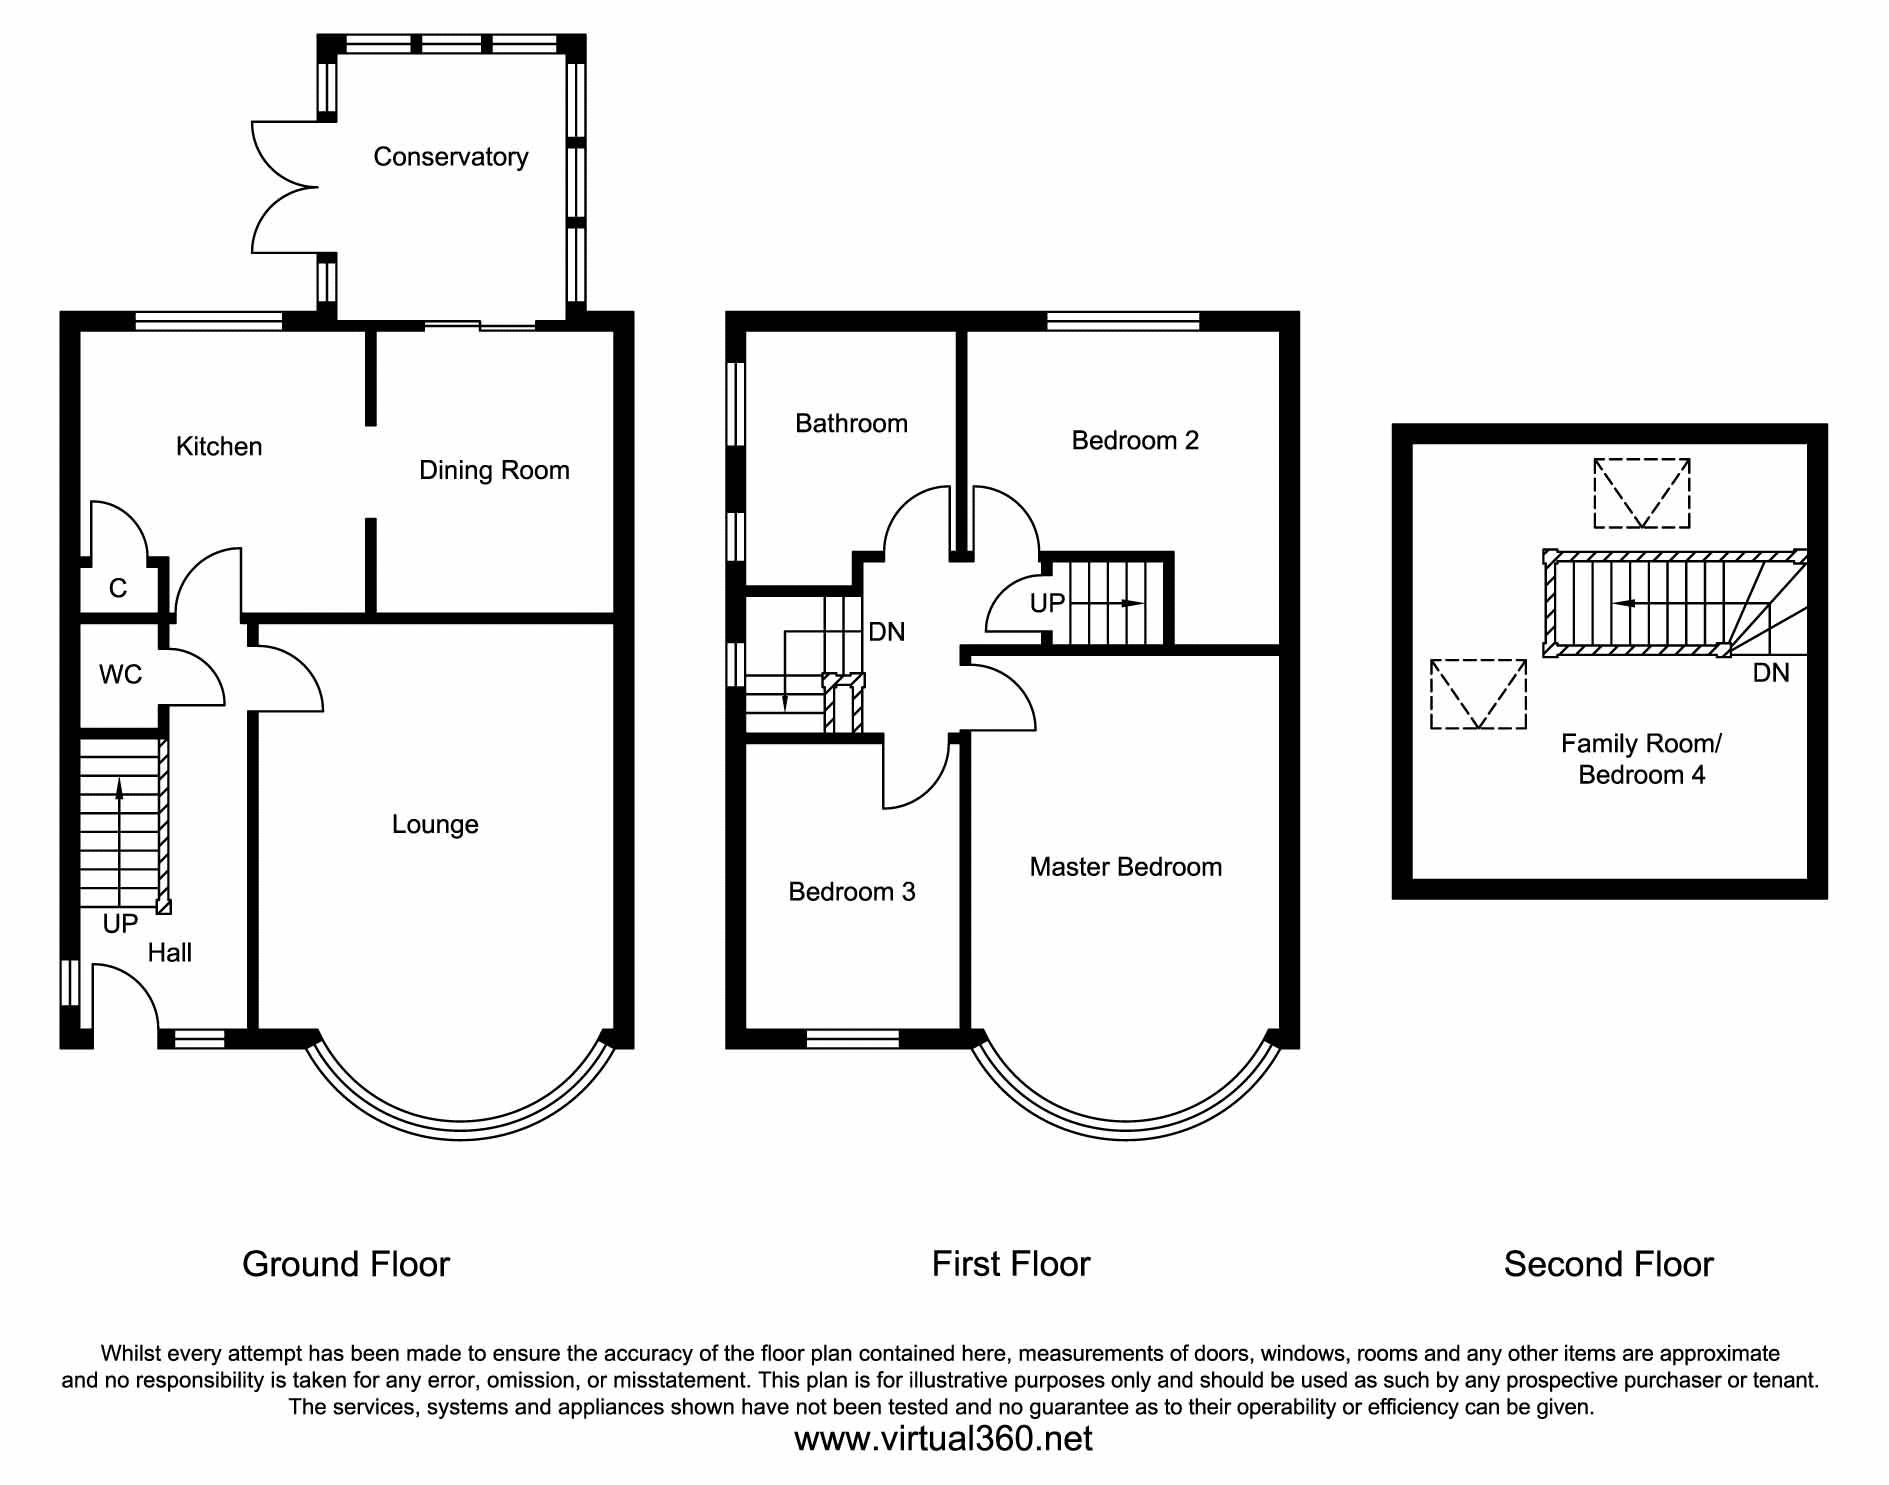 Lulworth Crescent, Crossgates, Whitkirk, Leeds floor plan